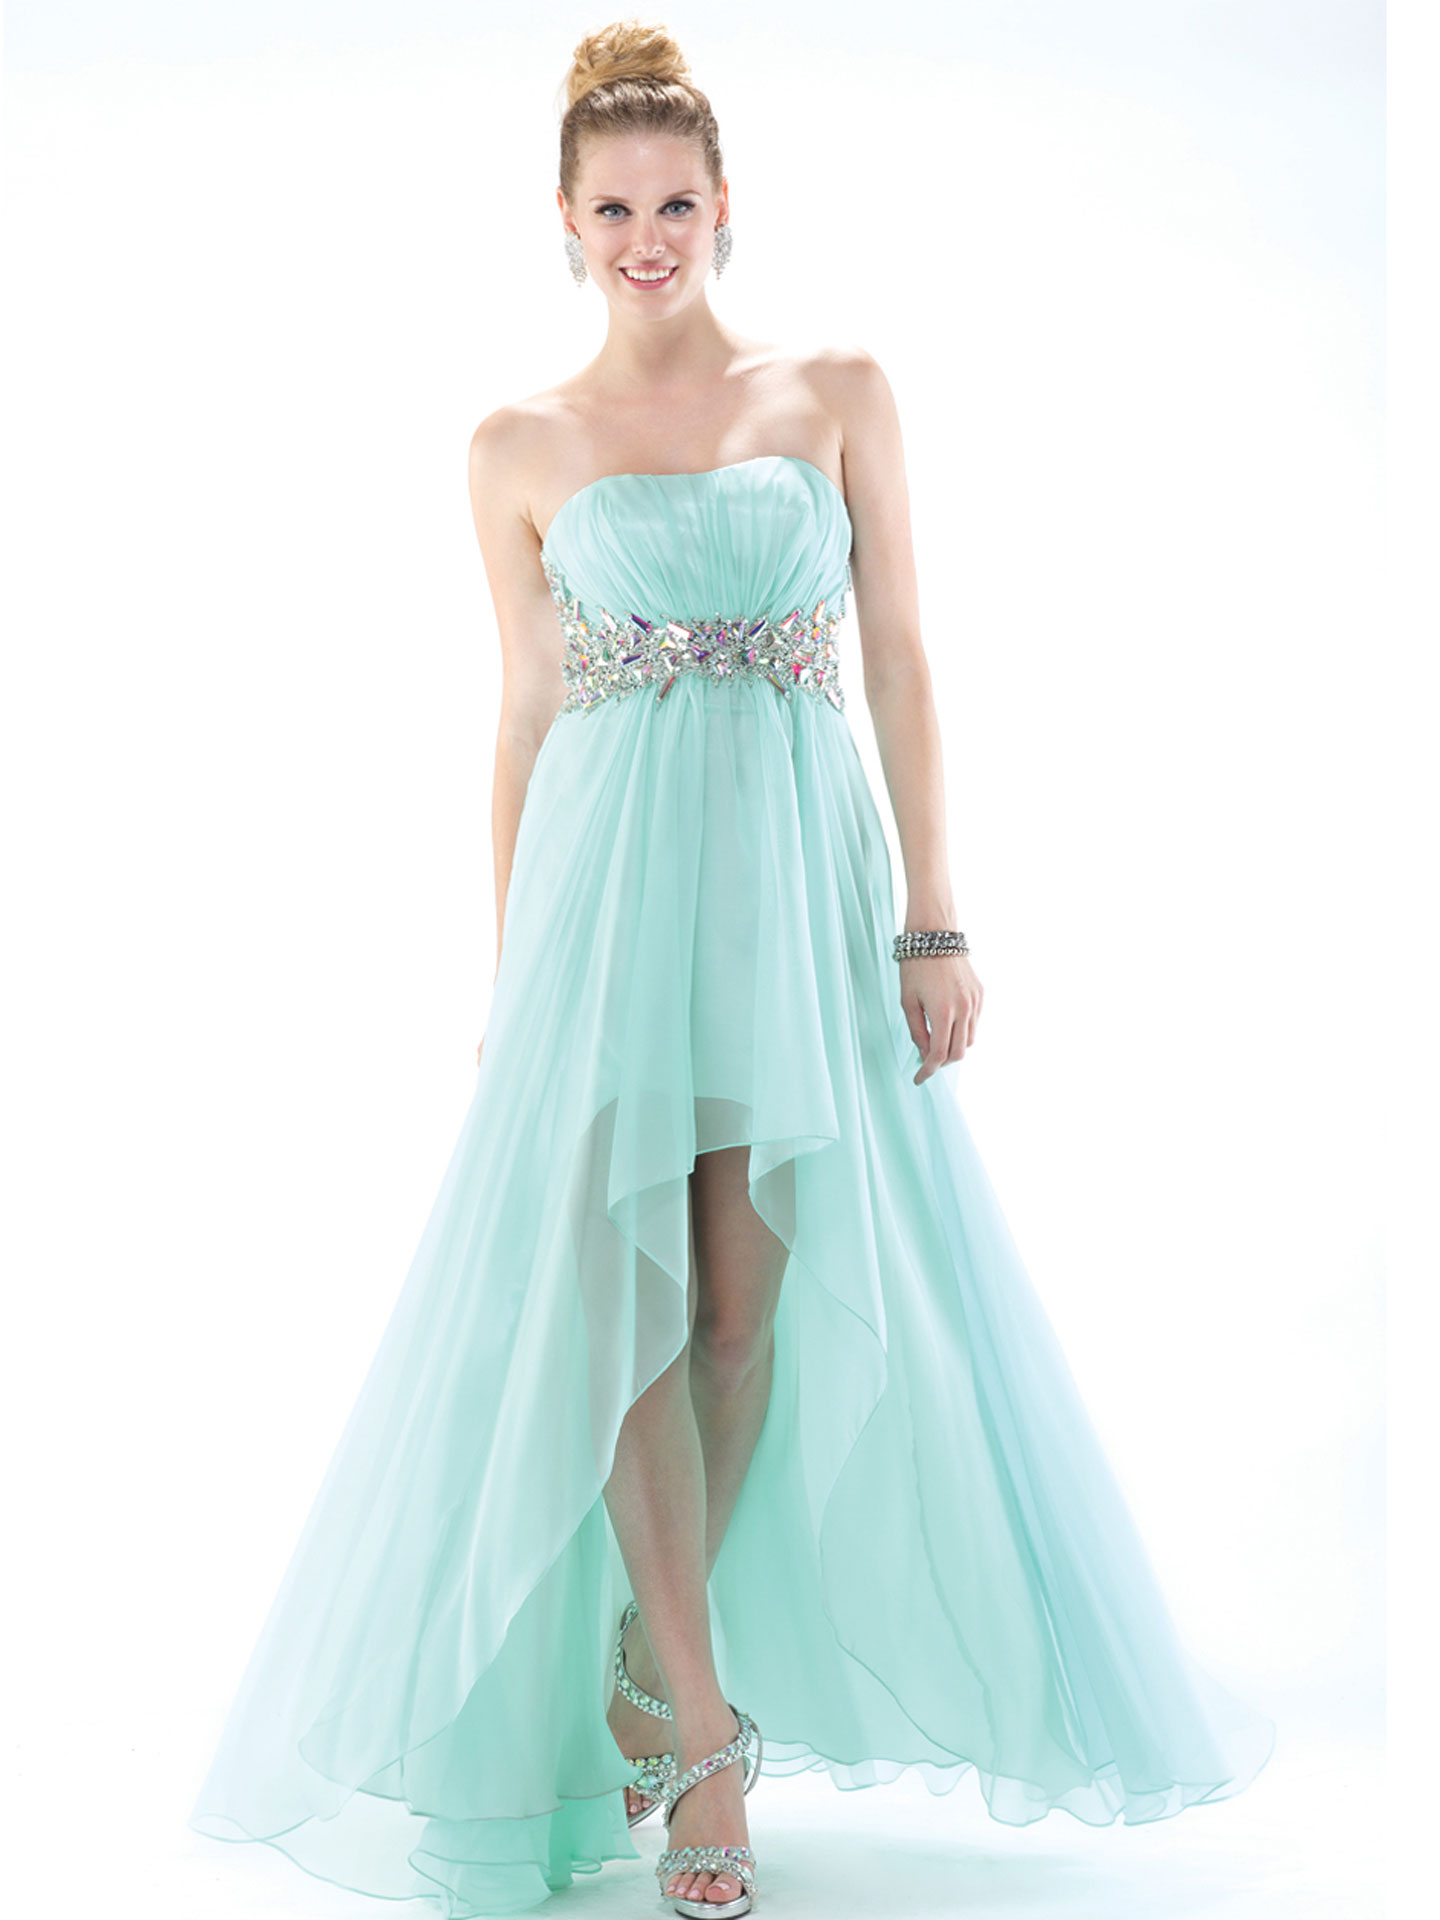 Prom Dress Sex - Gown And Dress Gallery